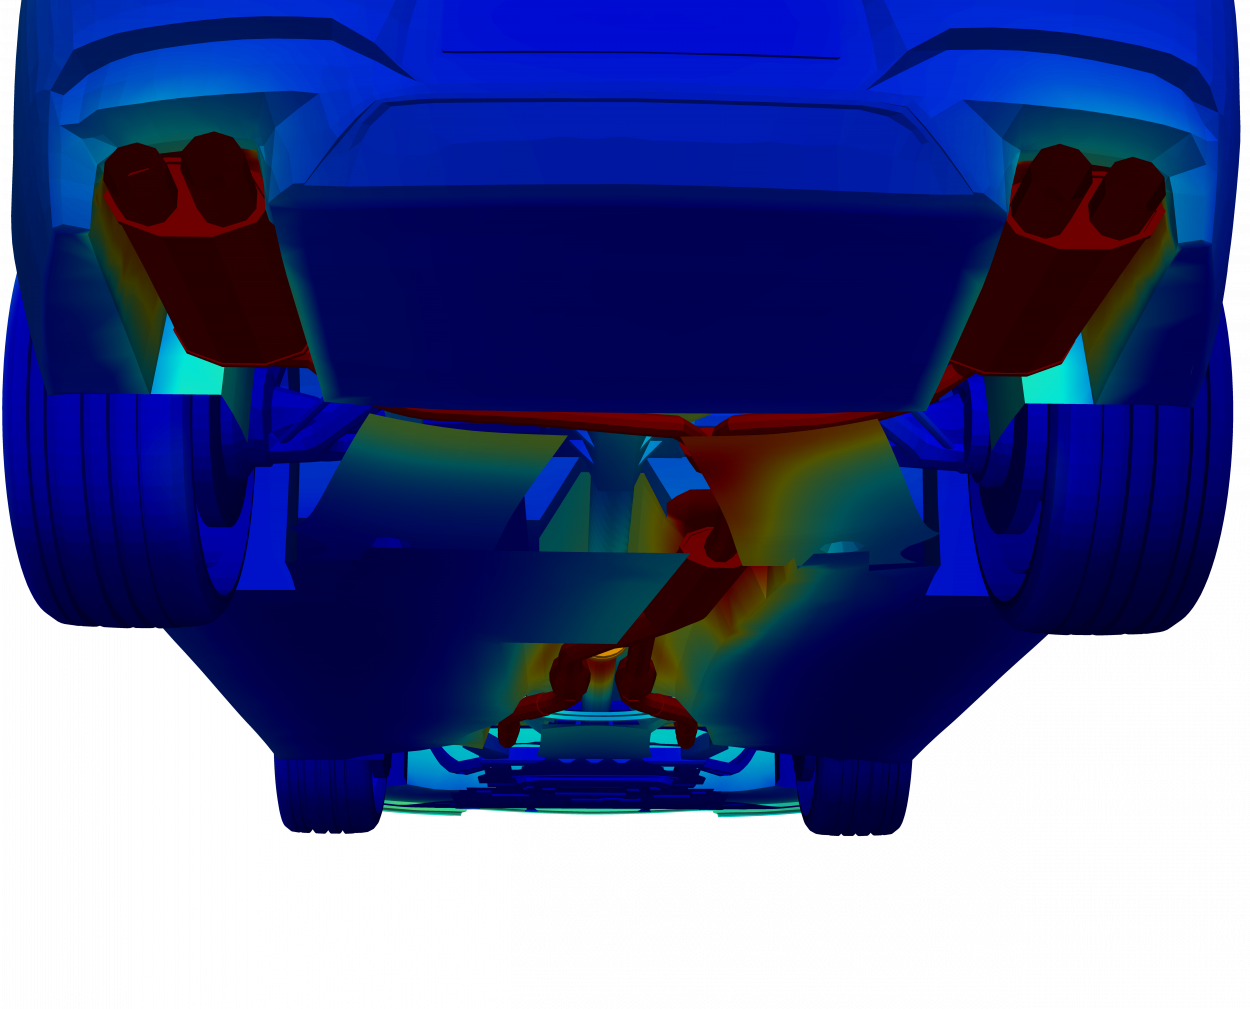 thermal model of underbody exhaust of car